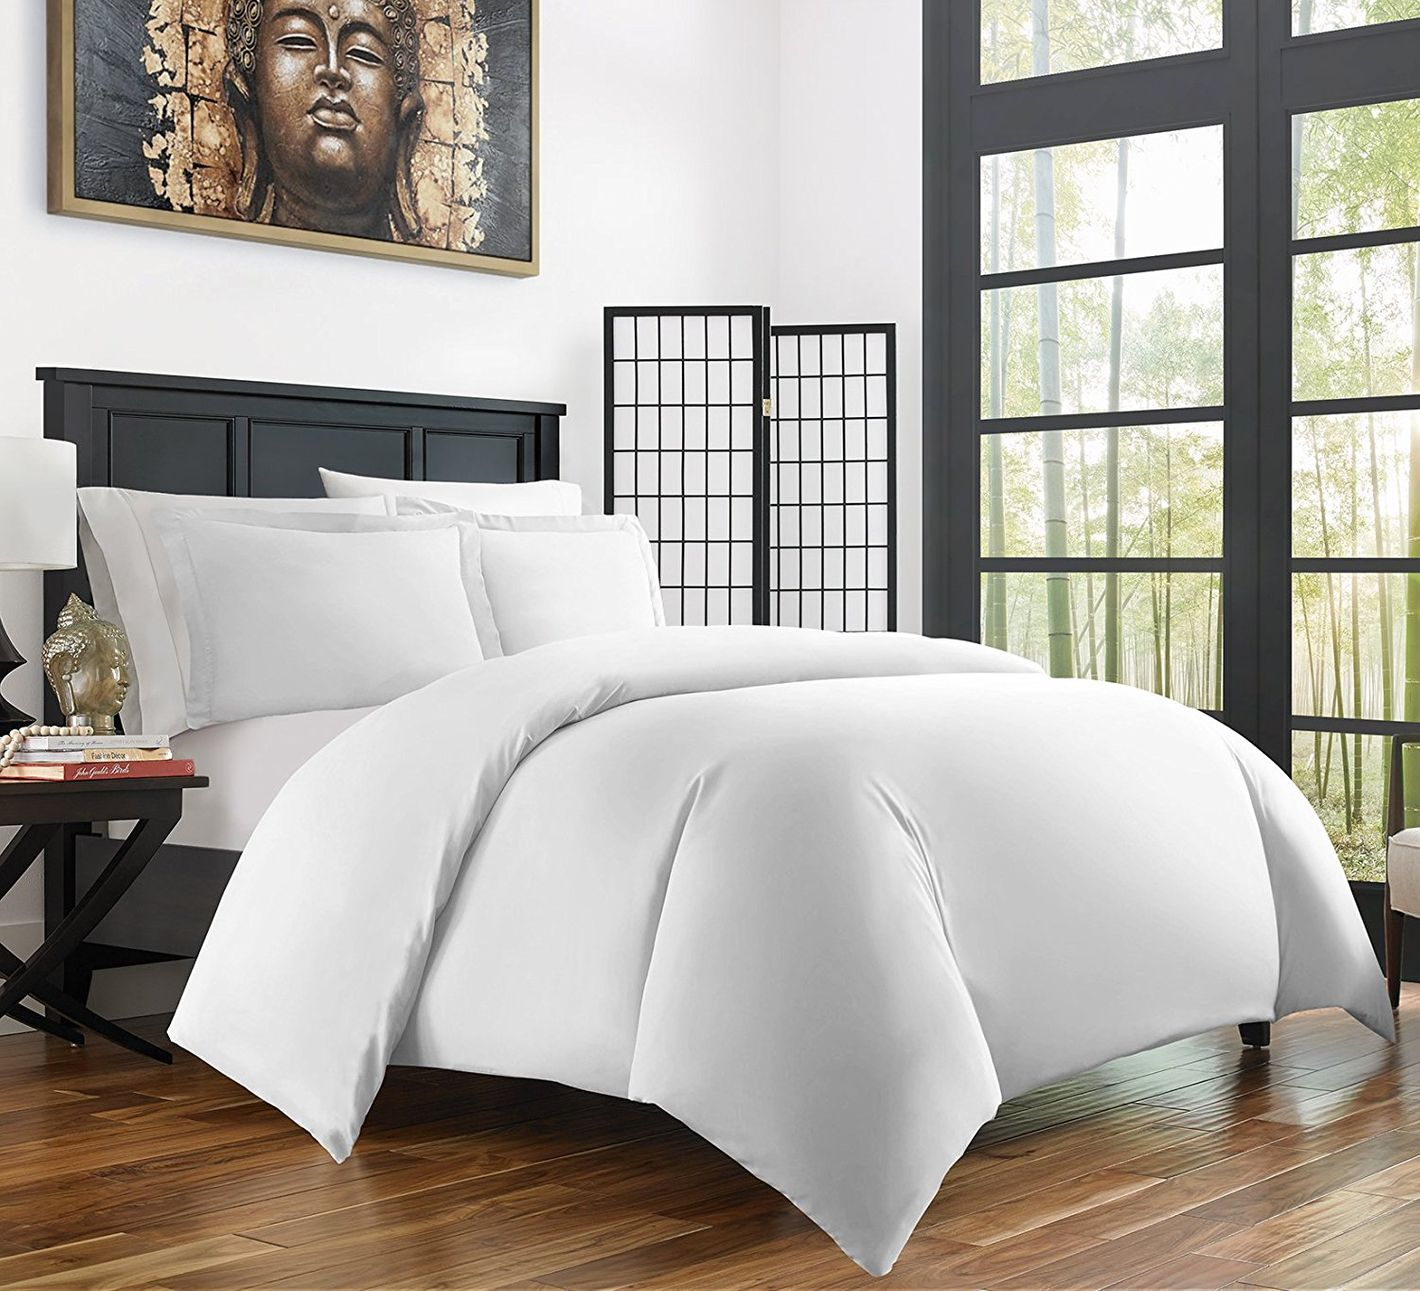 Zen Bamboo Ultra-Soft 3-Piece Bamboo-Derived Rayon Duvet Cover Set